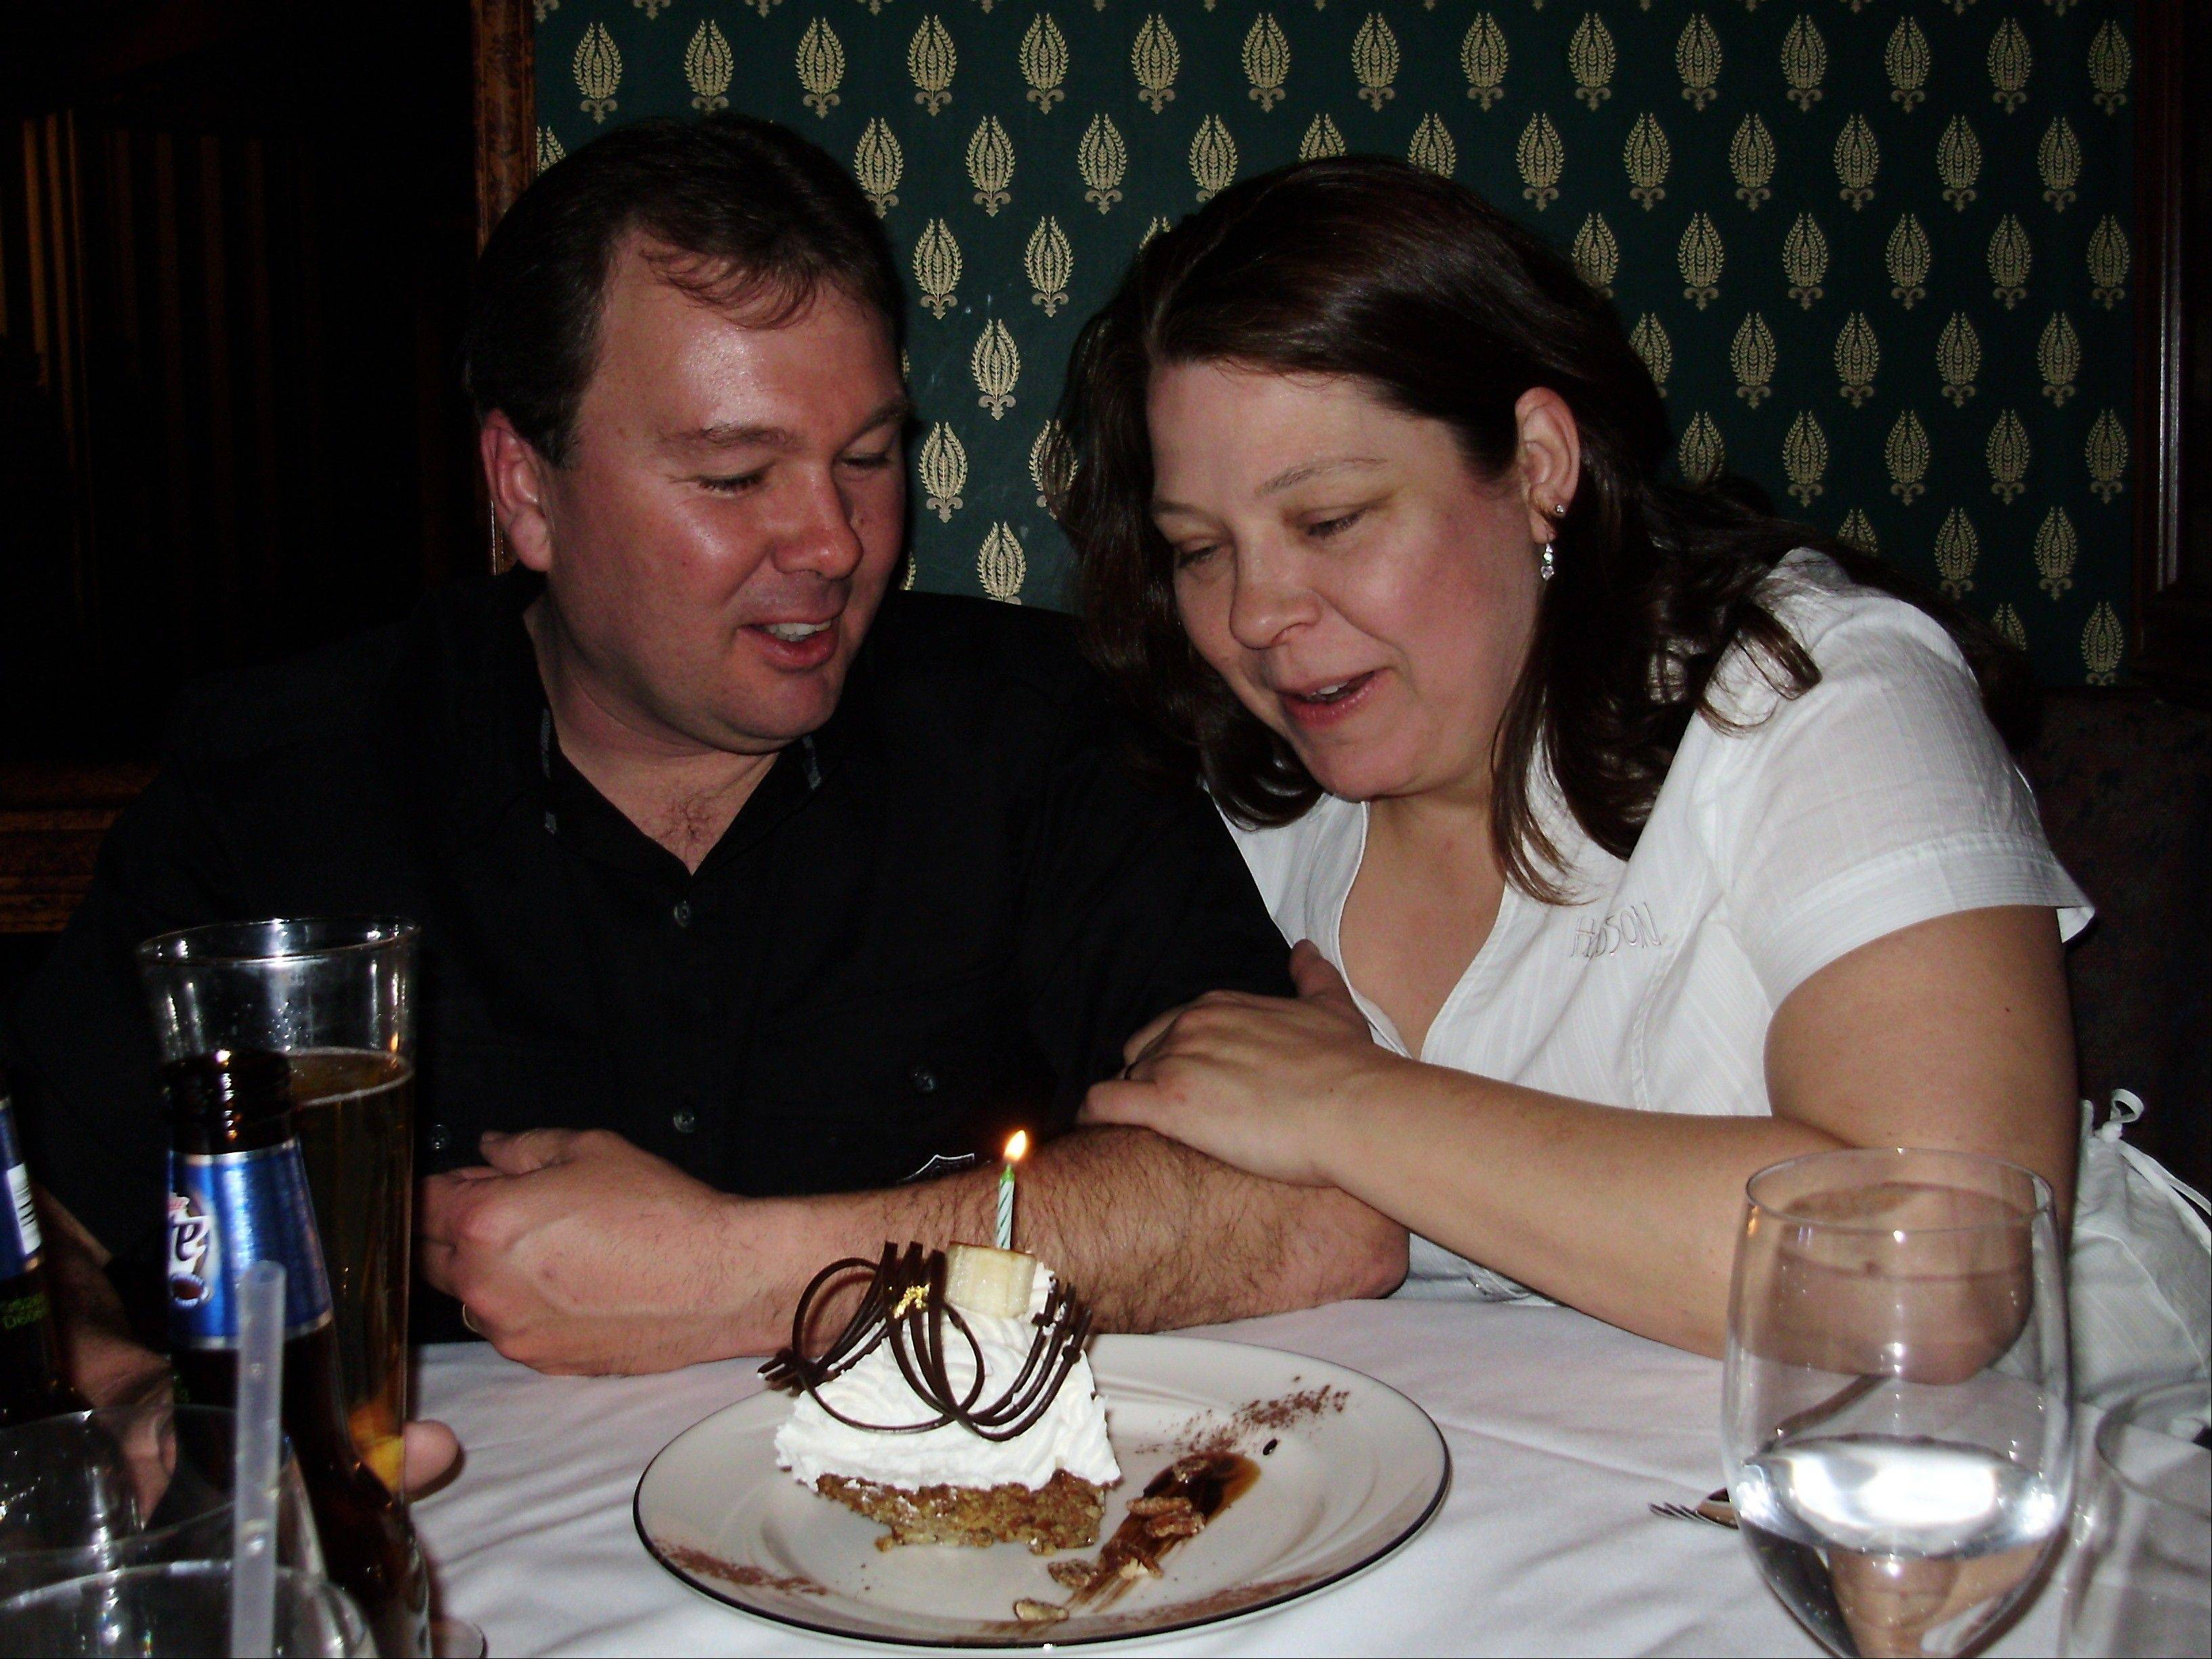 Wade and Denise Thomas of St. Charles were killed in a motorcycle crash May 23, 2009, near Elburn. The couple was married a little more than a year earlier.